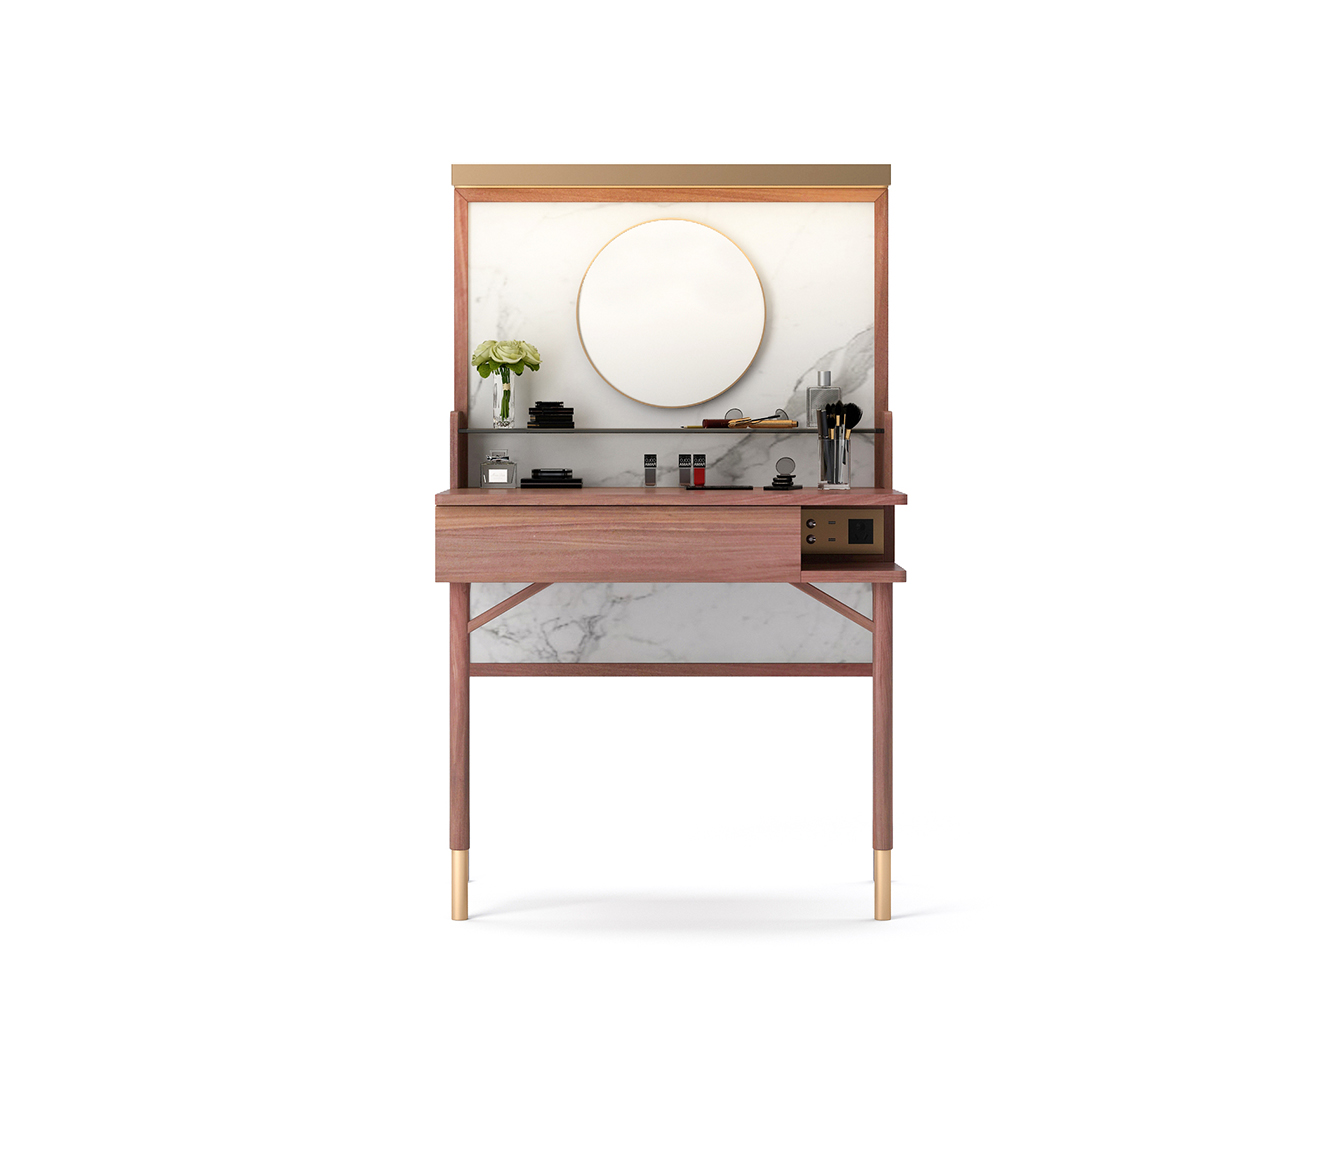 梳妆台 Dressing Table  SZ-04